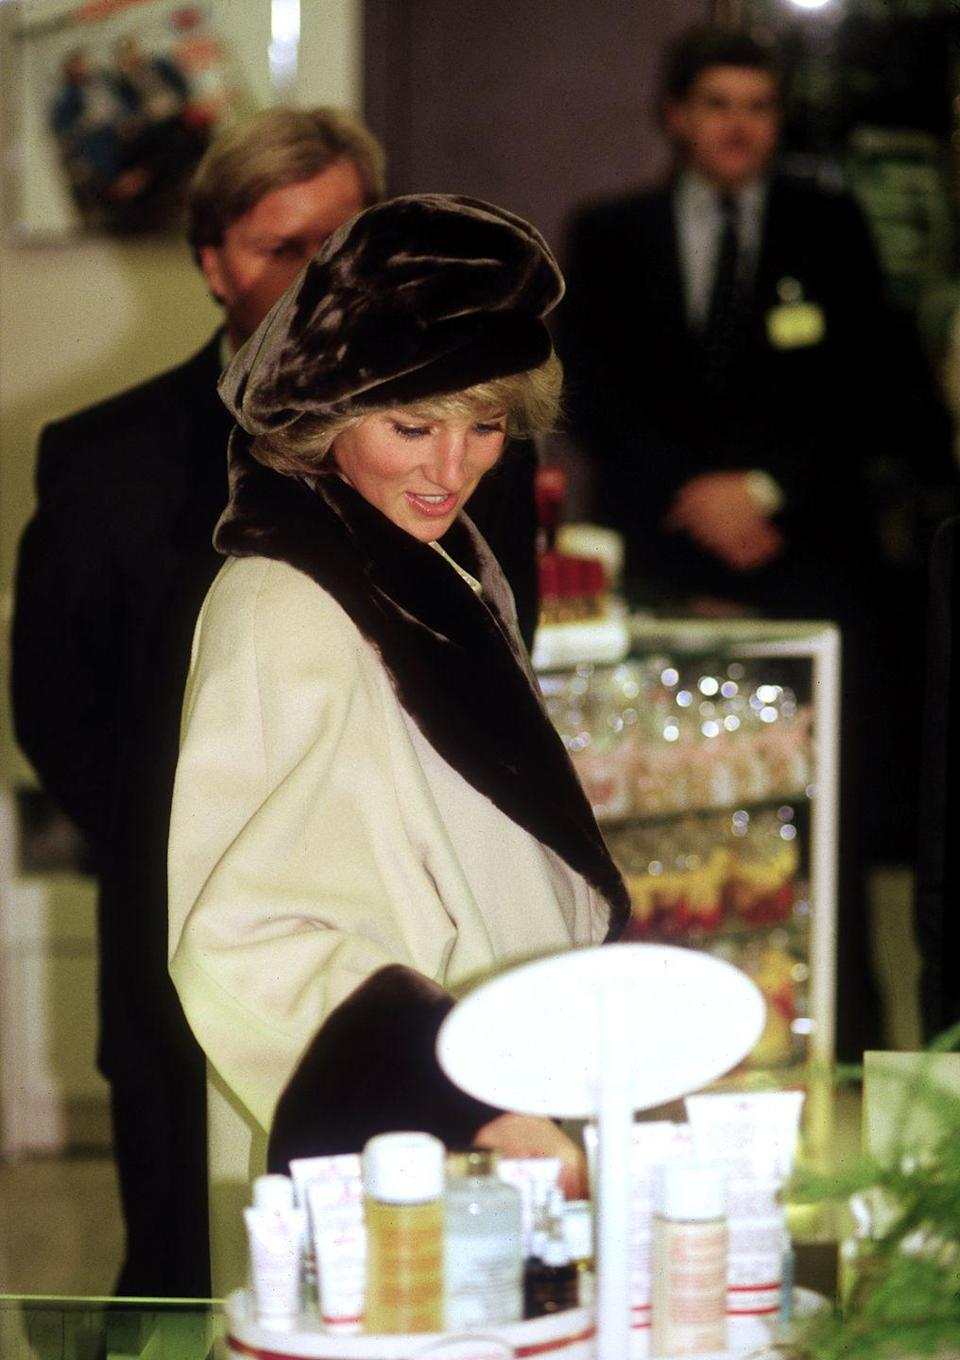 <p>Princess Diana browsed the merchandise in a department store in Germany in 1987. The Princess of Wales stopped by the store while in the country for an official royal visit. </p>